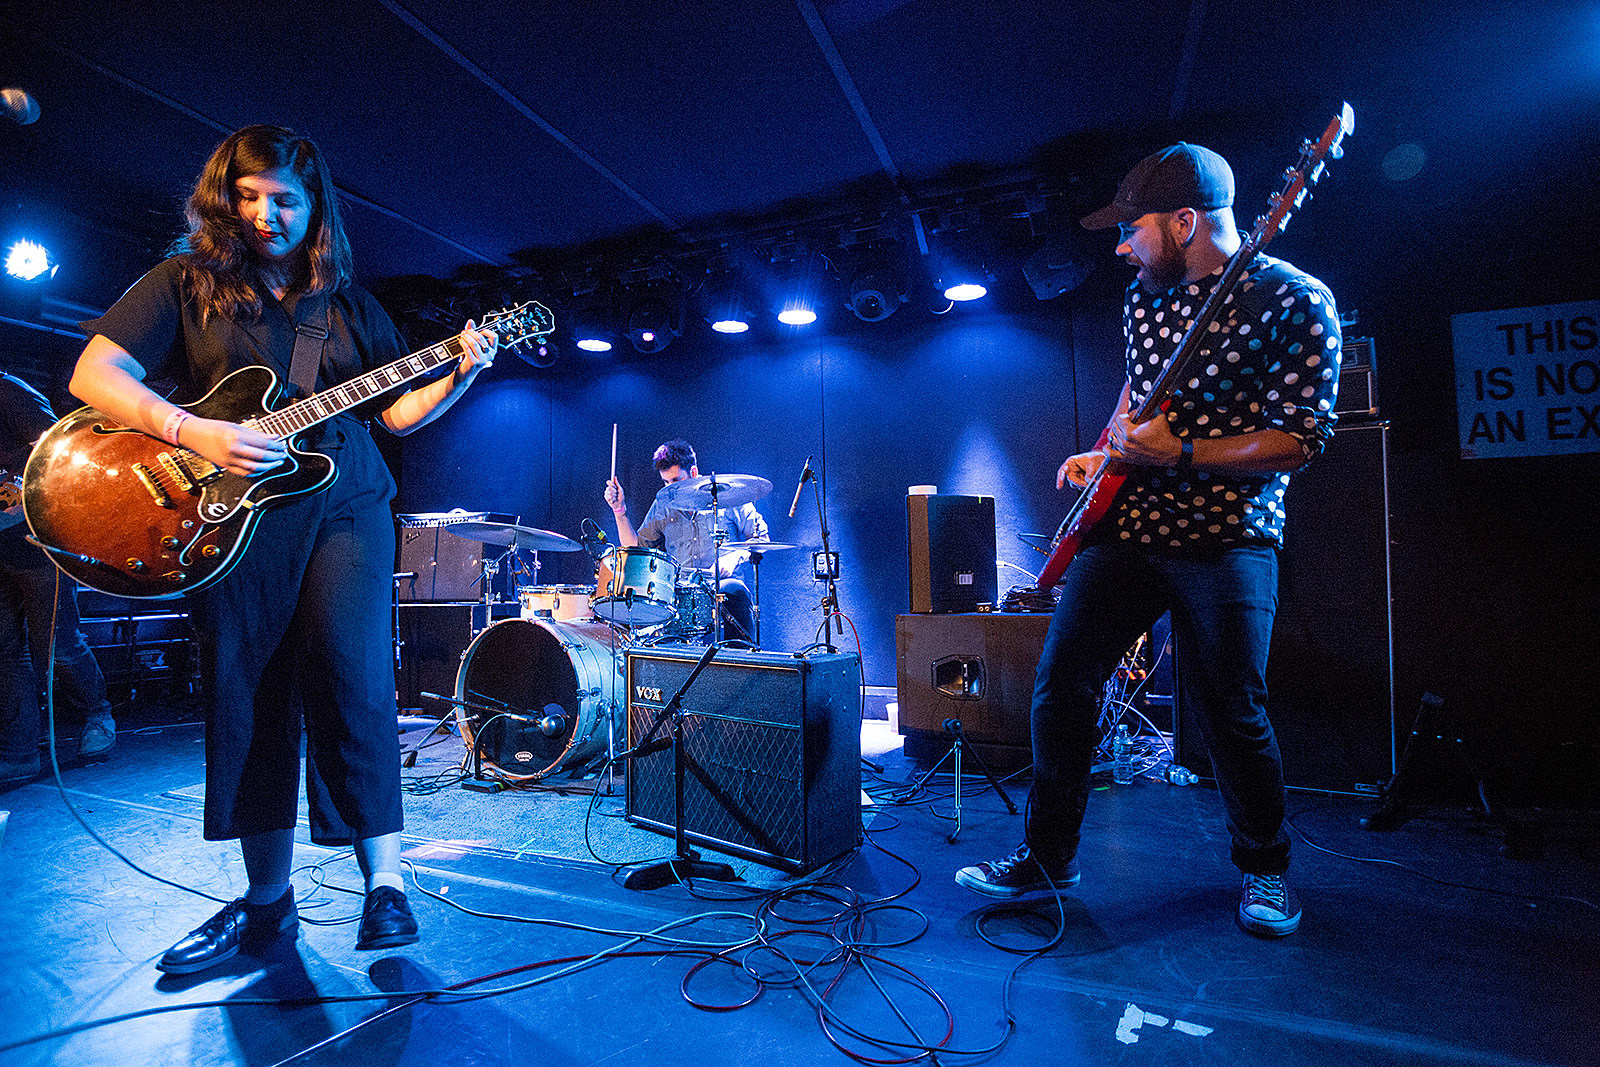 Lucy Dacus at Mercury Lounge